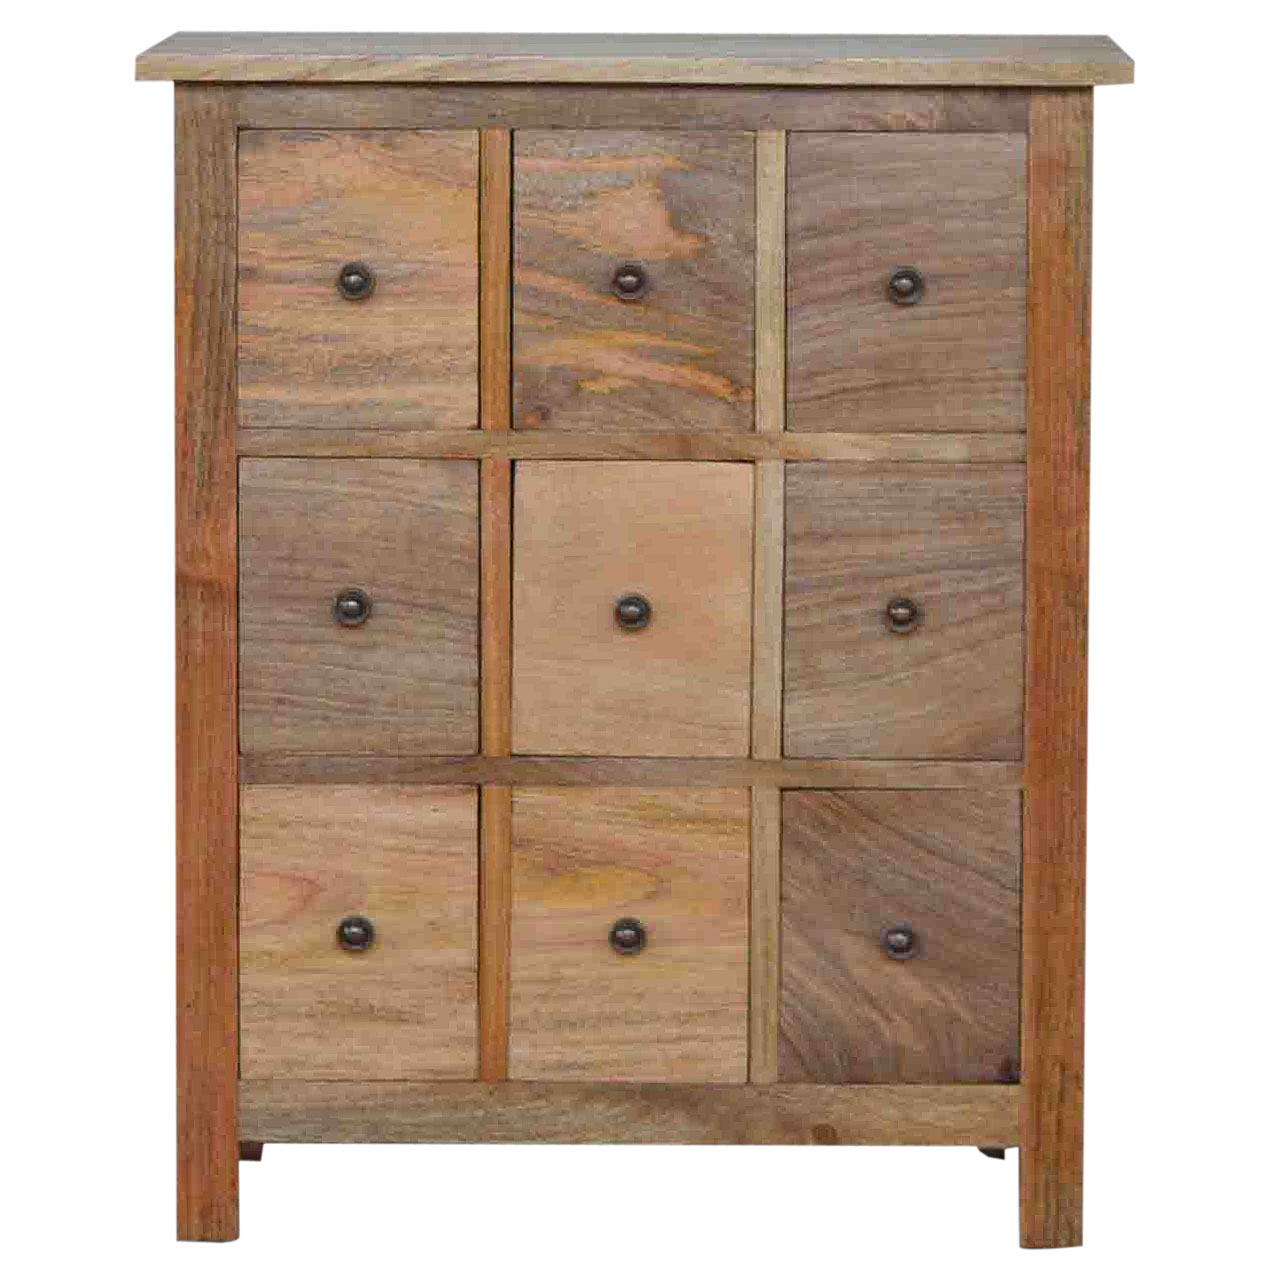 IN004 9 Drawer Chest of Drawers